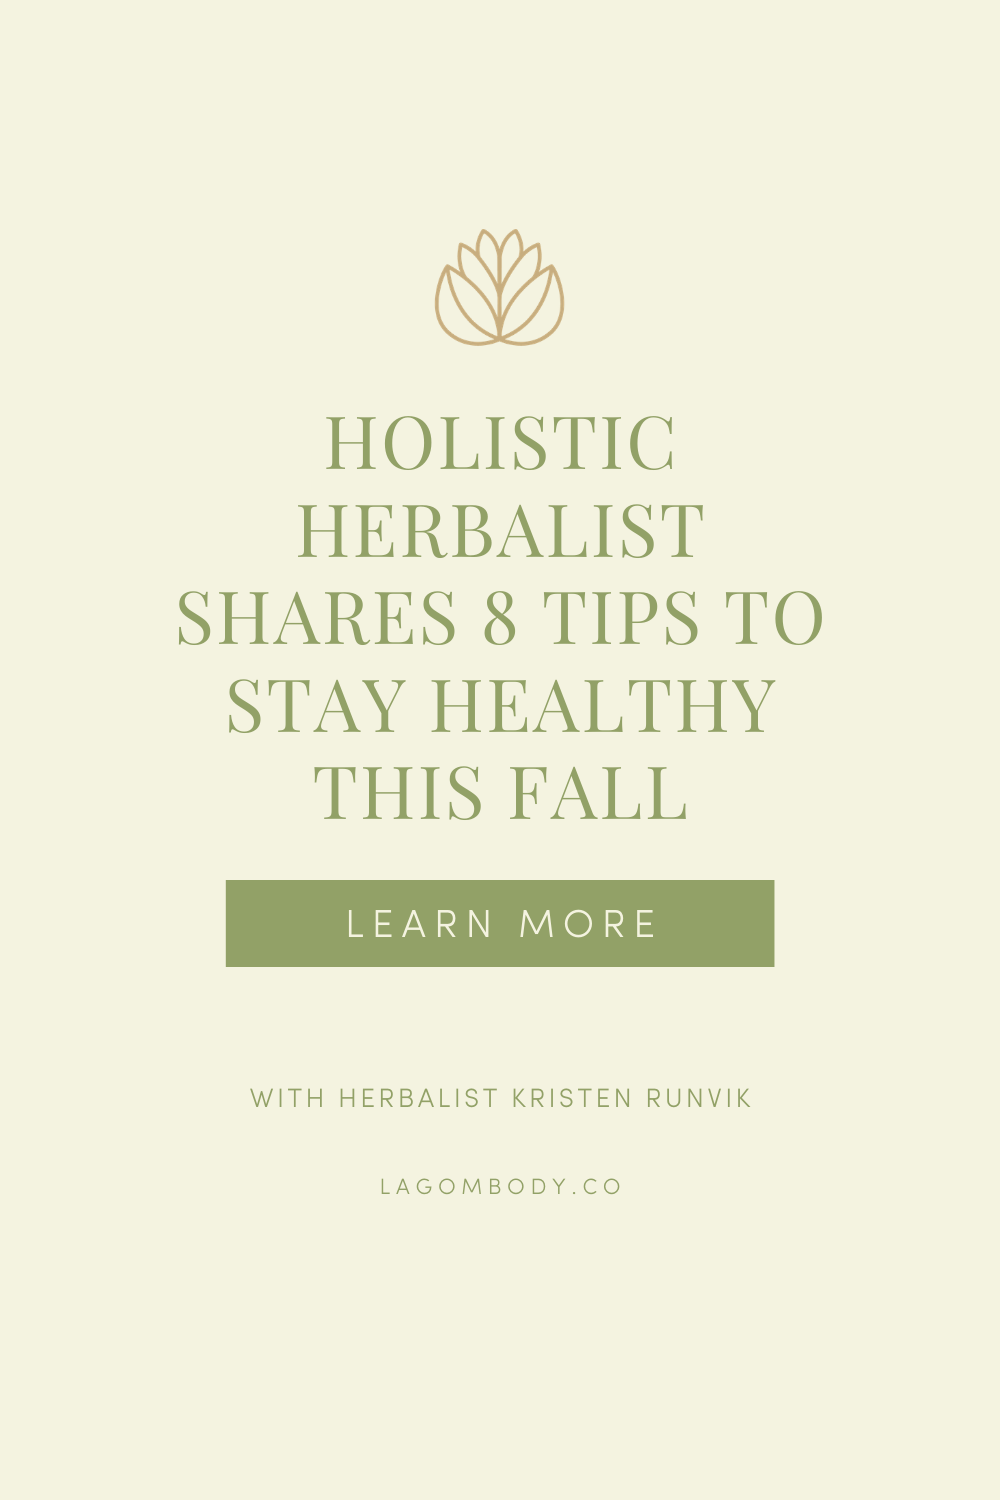 Holistic Herbalist Shares 8 Tips To Stay Healthy This Fall